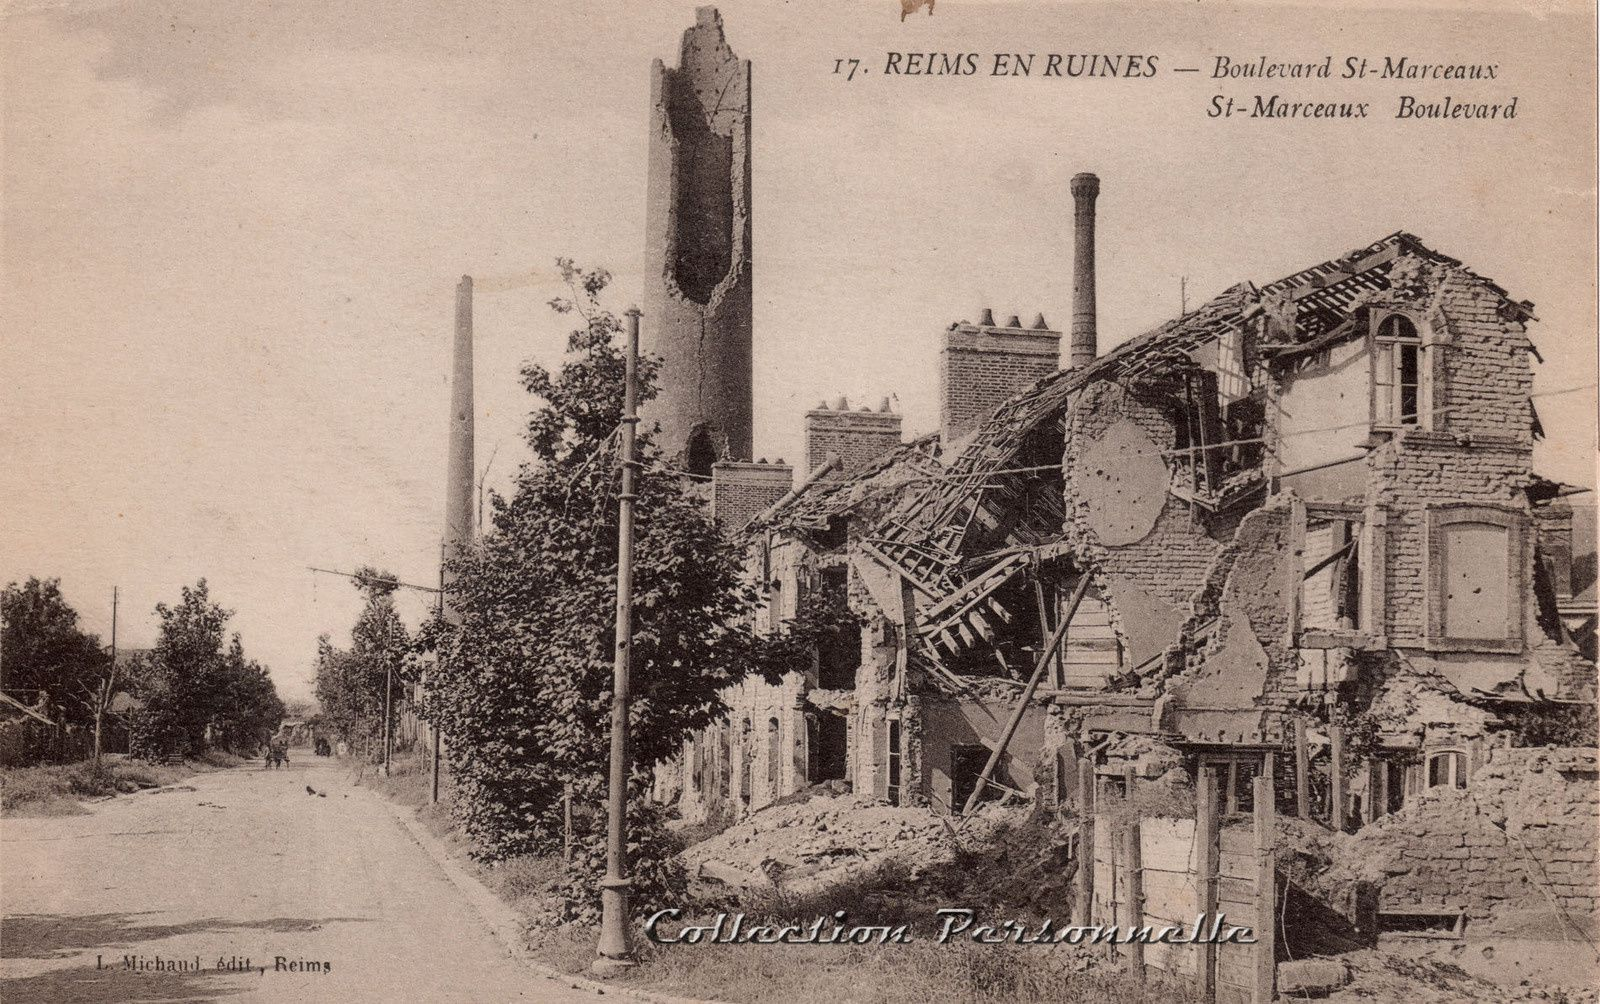 L.Michaud. édit, Reims